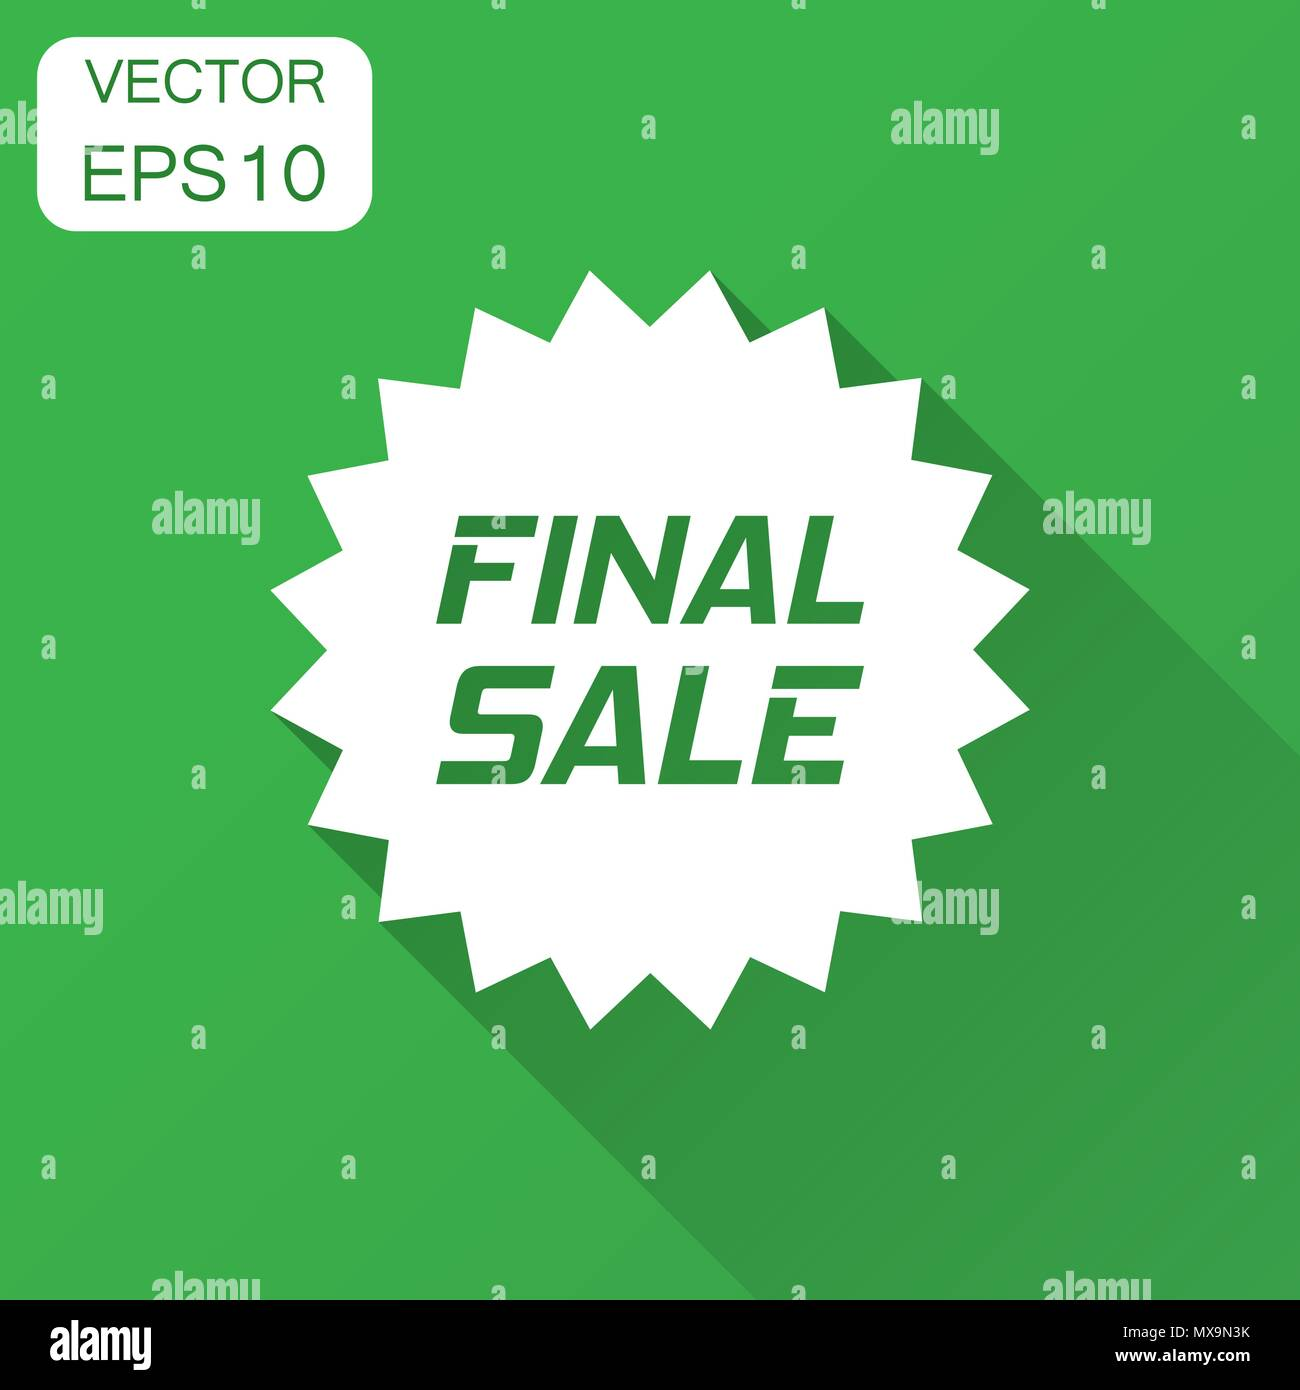 Discount sticker vector icon in flat style. Sale tag sign illustration with long shadow. Promotion final sale discount concept. - Stock Vector